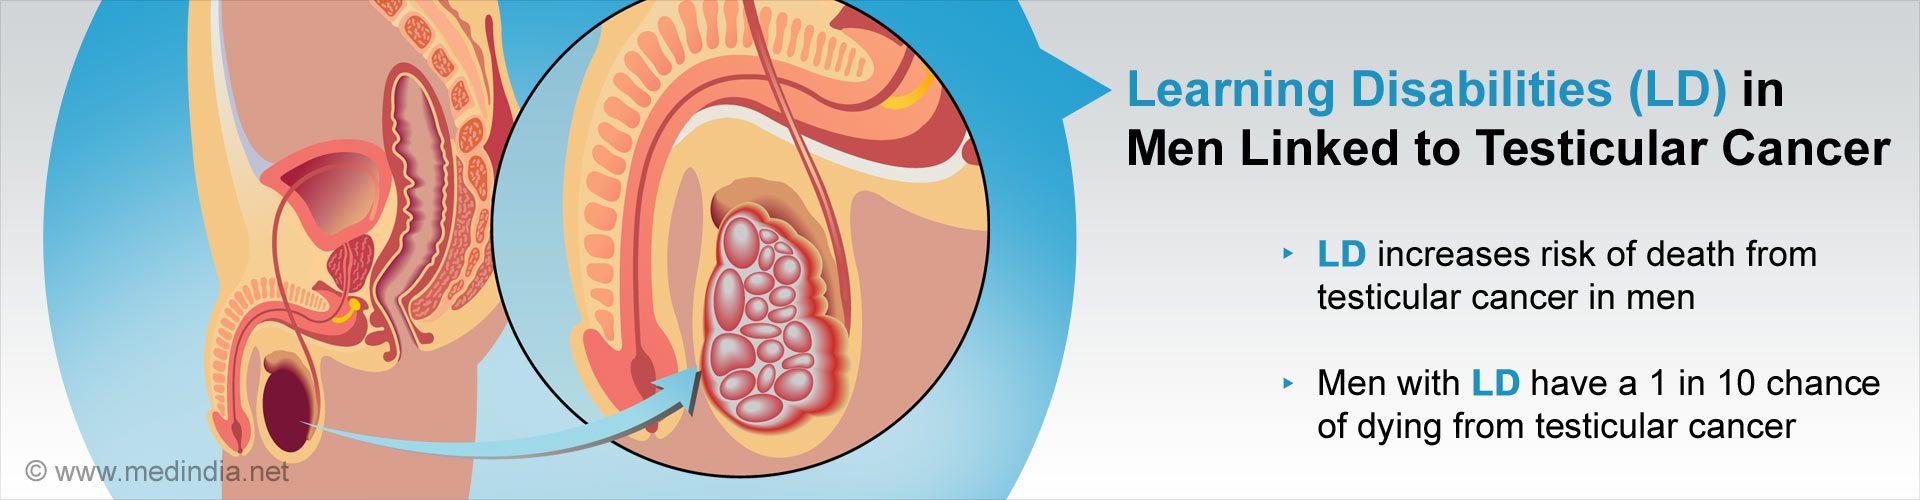 Men With Learning Disabilities More Likely To Develop Testicular Cancer